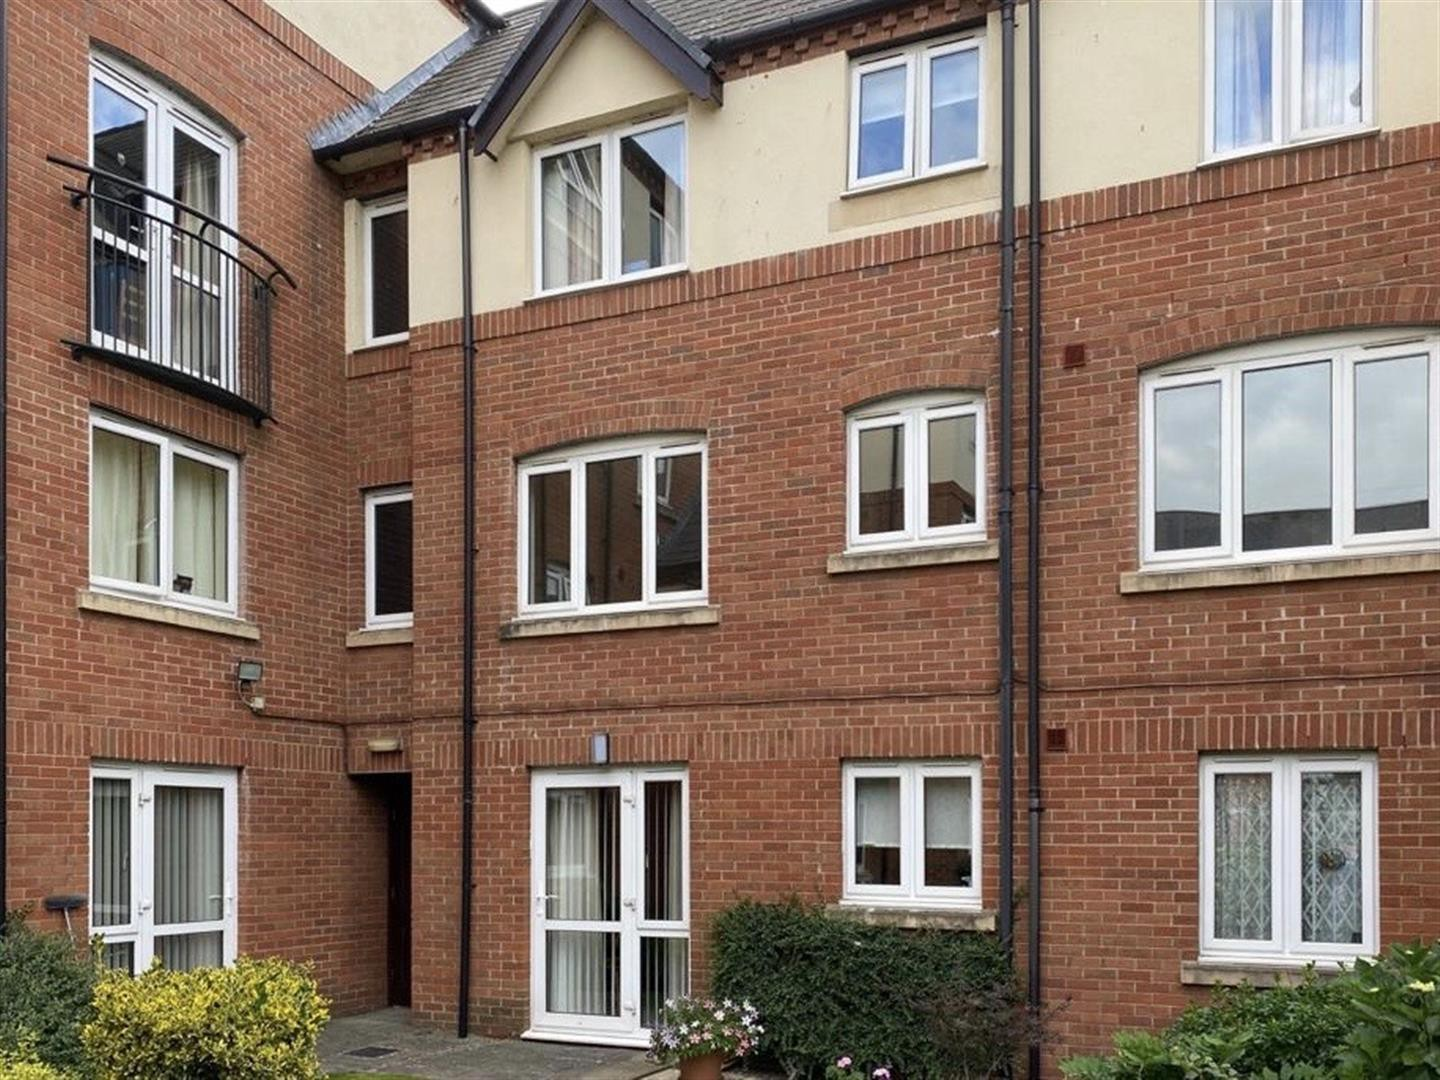 35 Watkins Court, Old Mill Close, Hereford